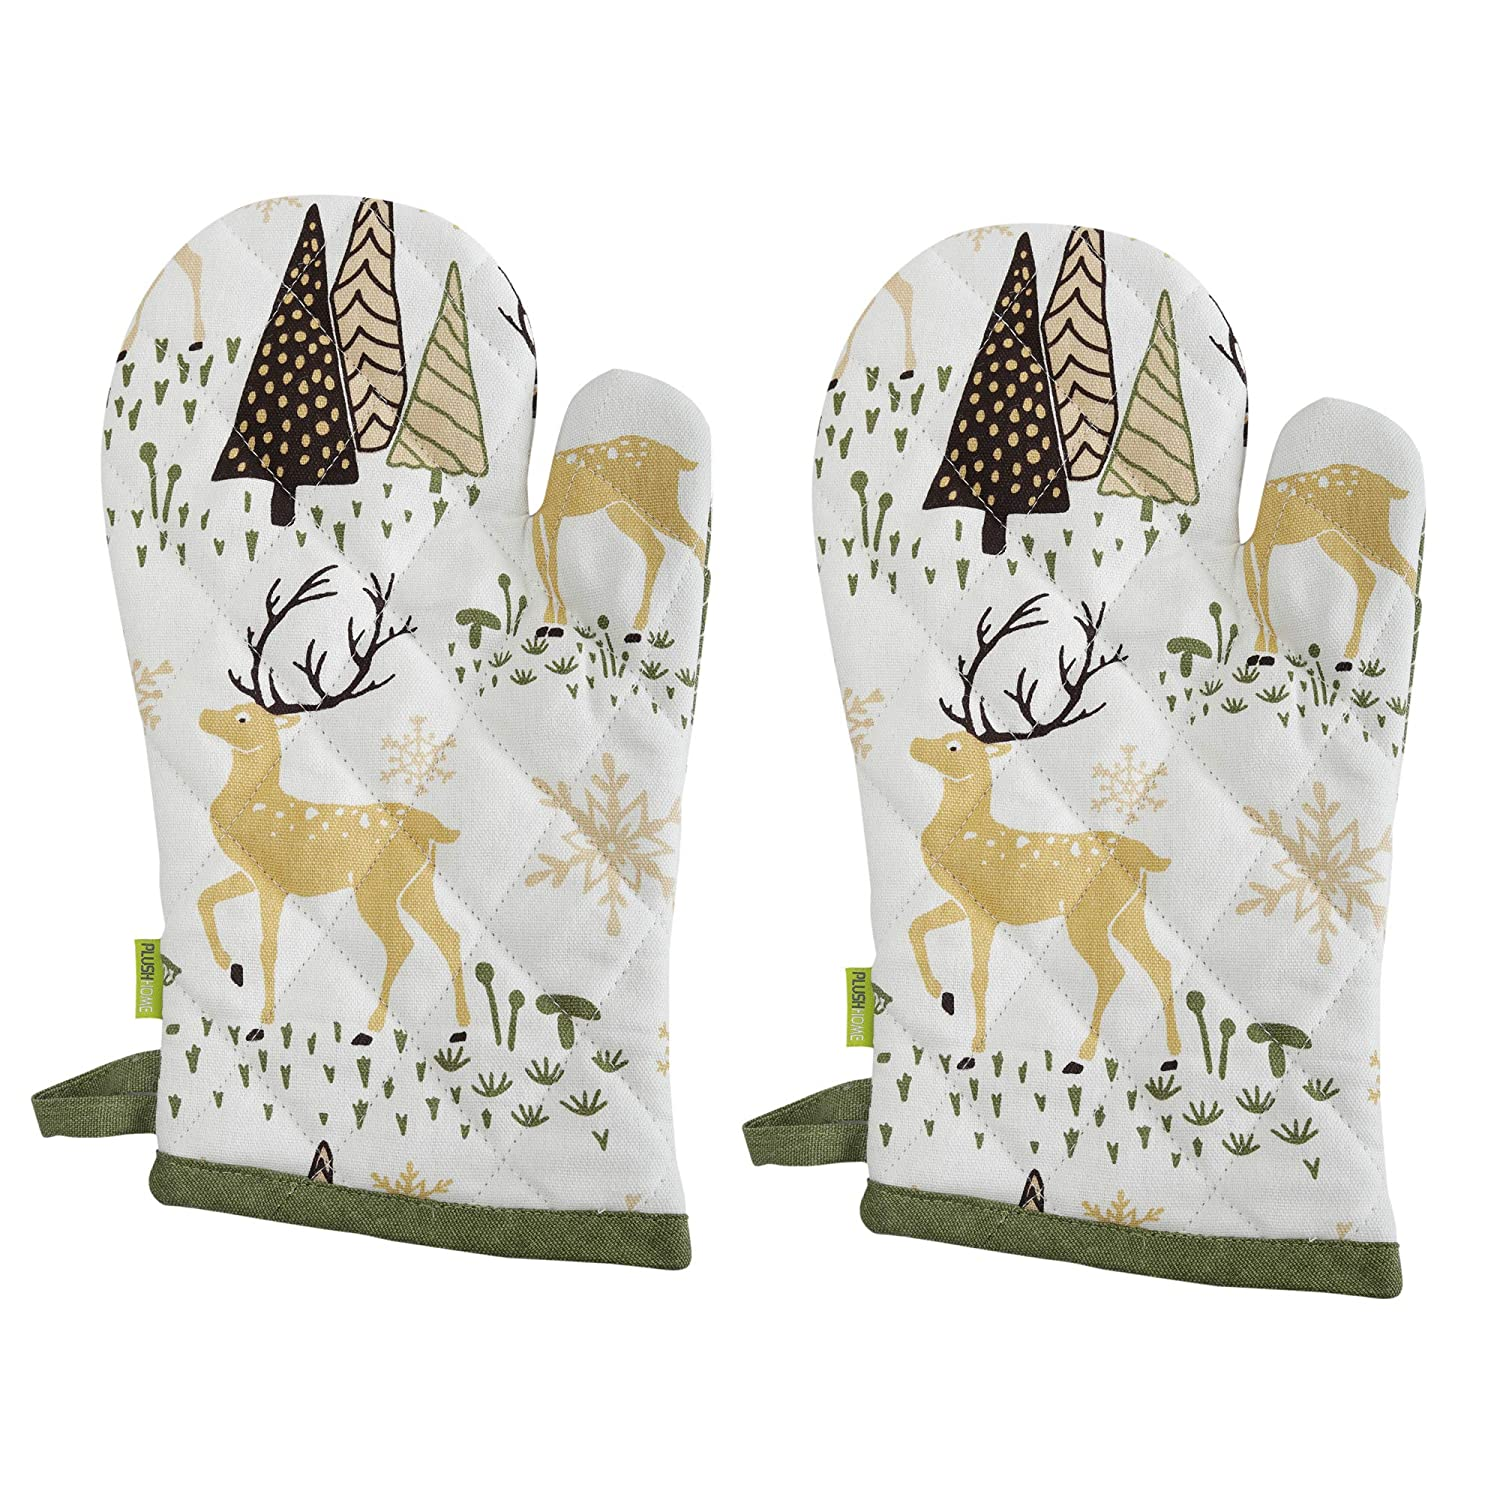 "Set of 2 Oven Mitts - Christmas Forest design, 100% Cotton of Size 7""X12 Inch with high heat resistant polyester filling for Thanks Giving, Christmas & other Holiday Season."